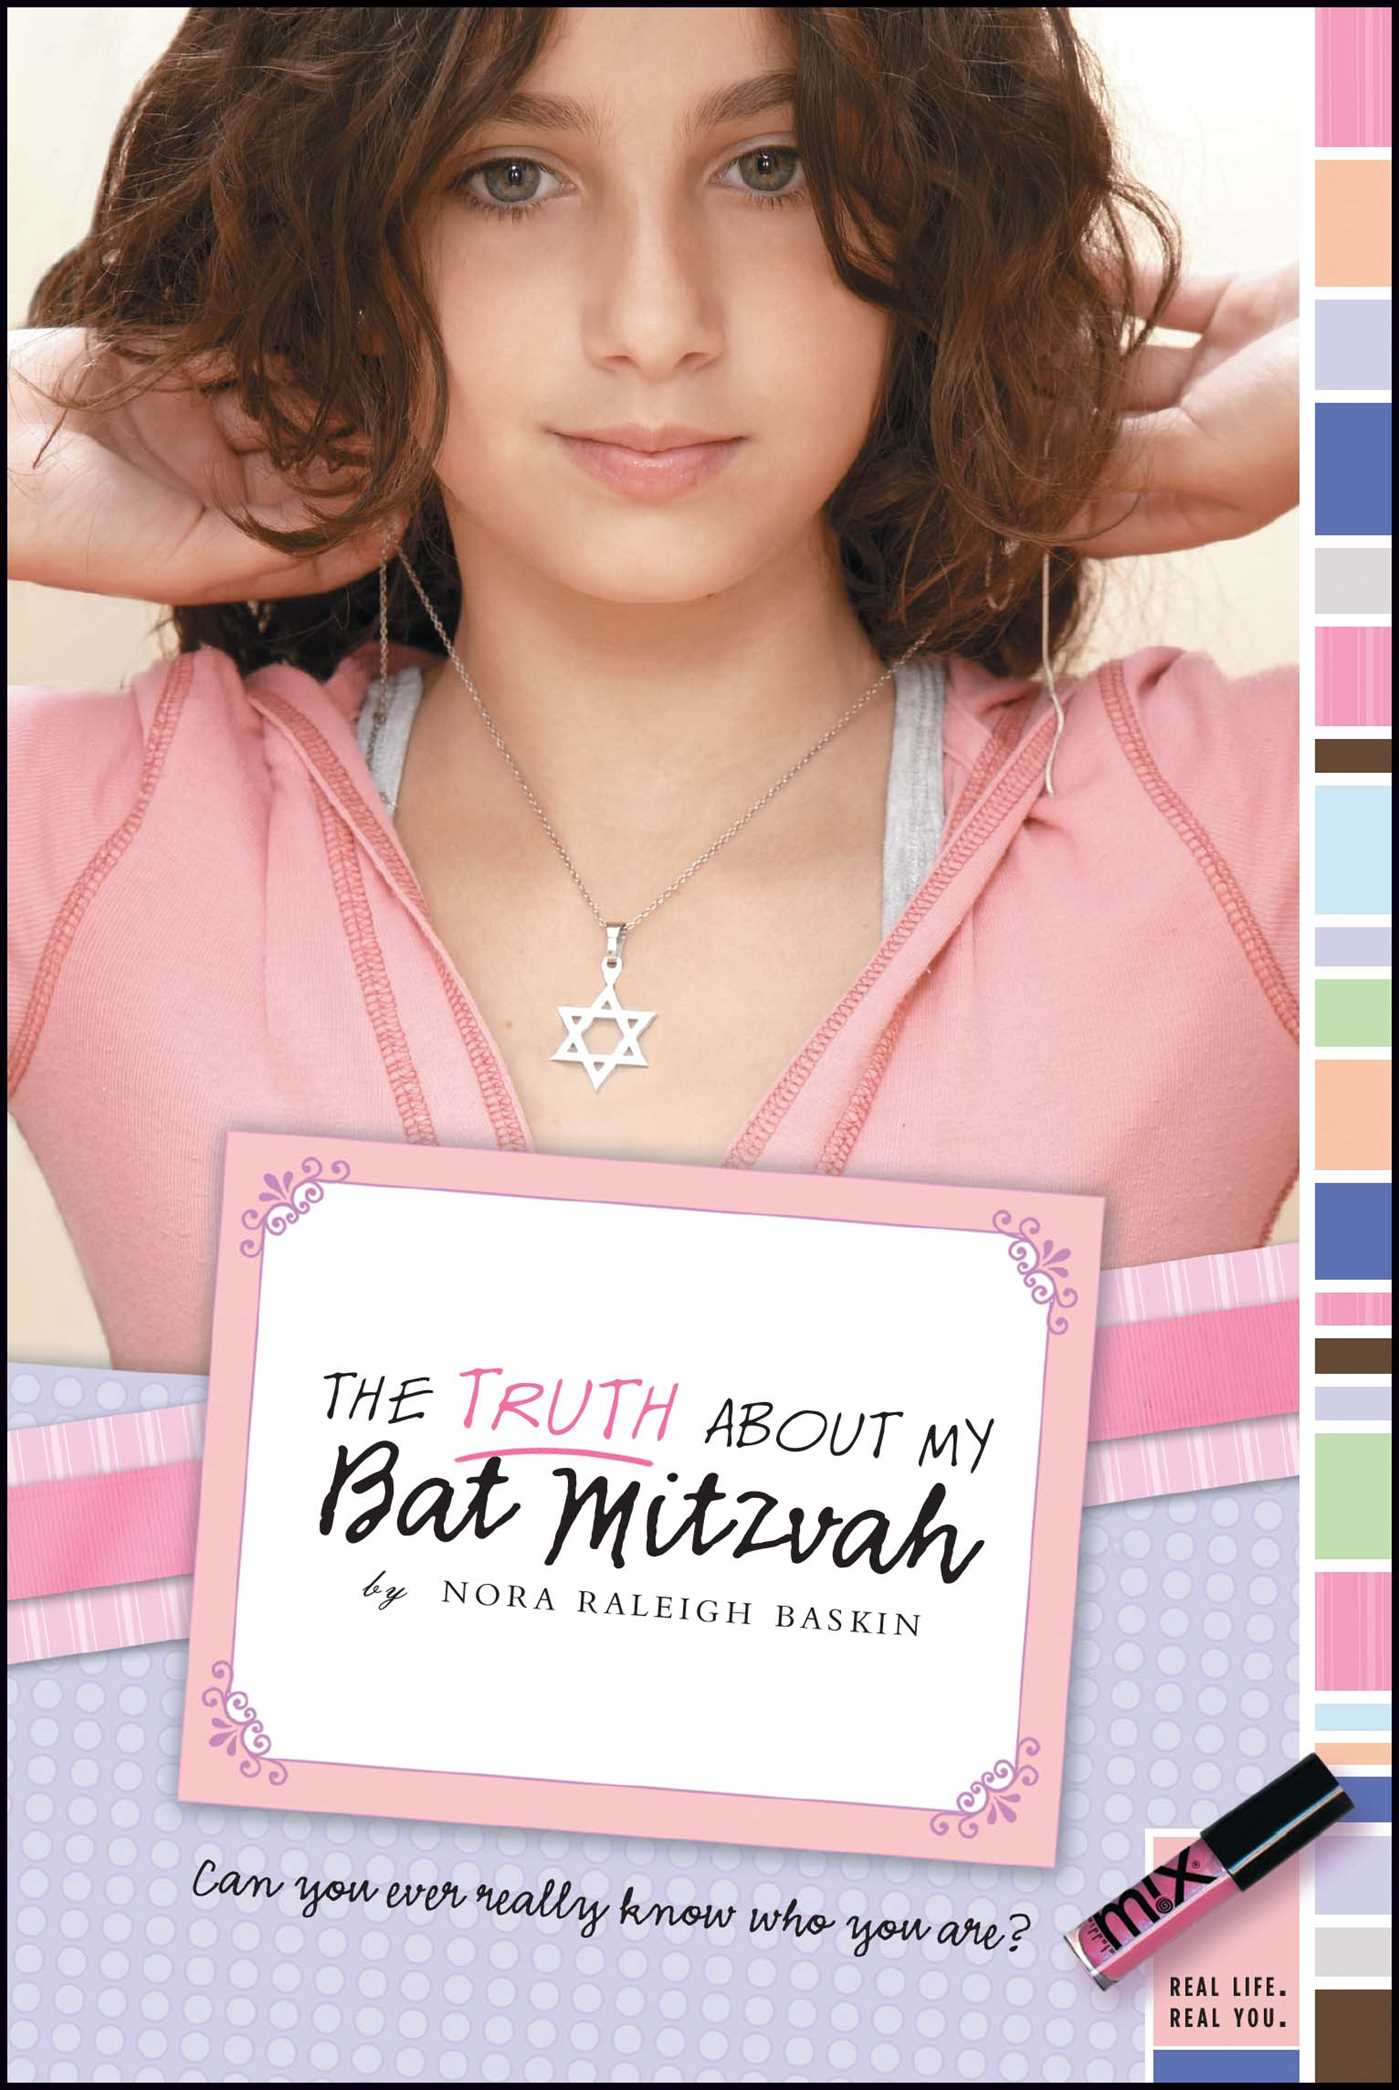 The truth about my bat mitzvah 9781416974697 hr